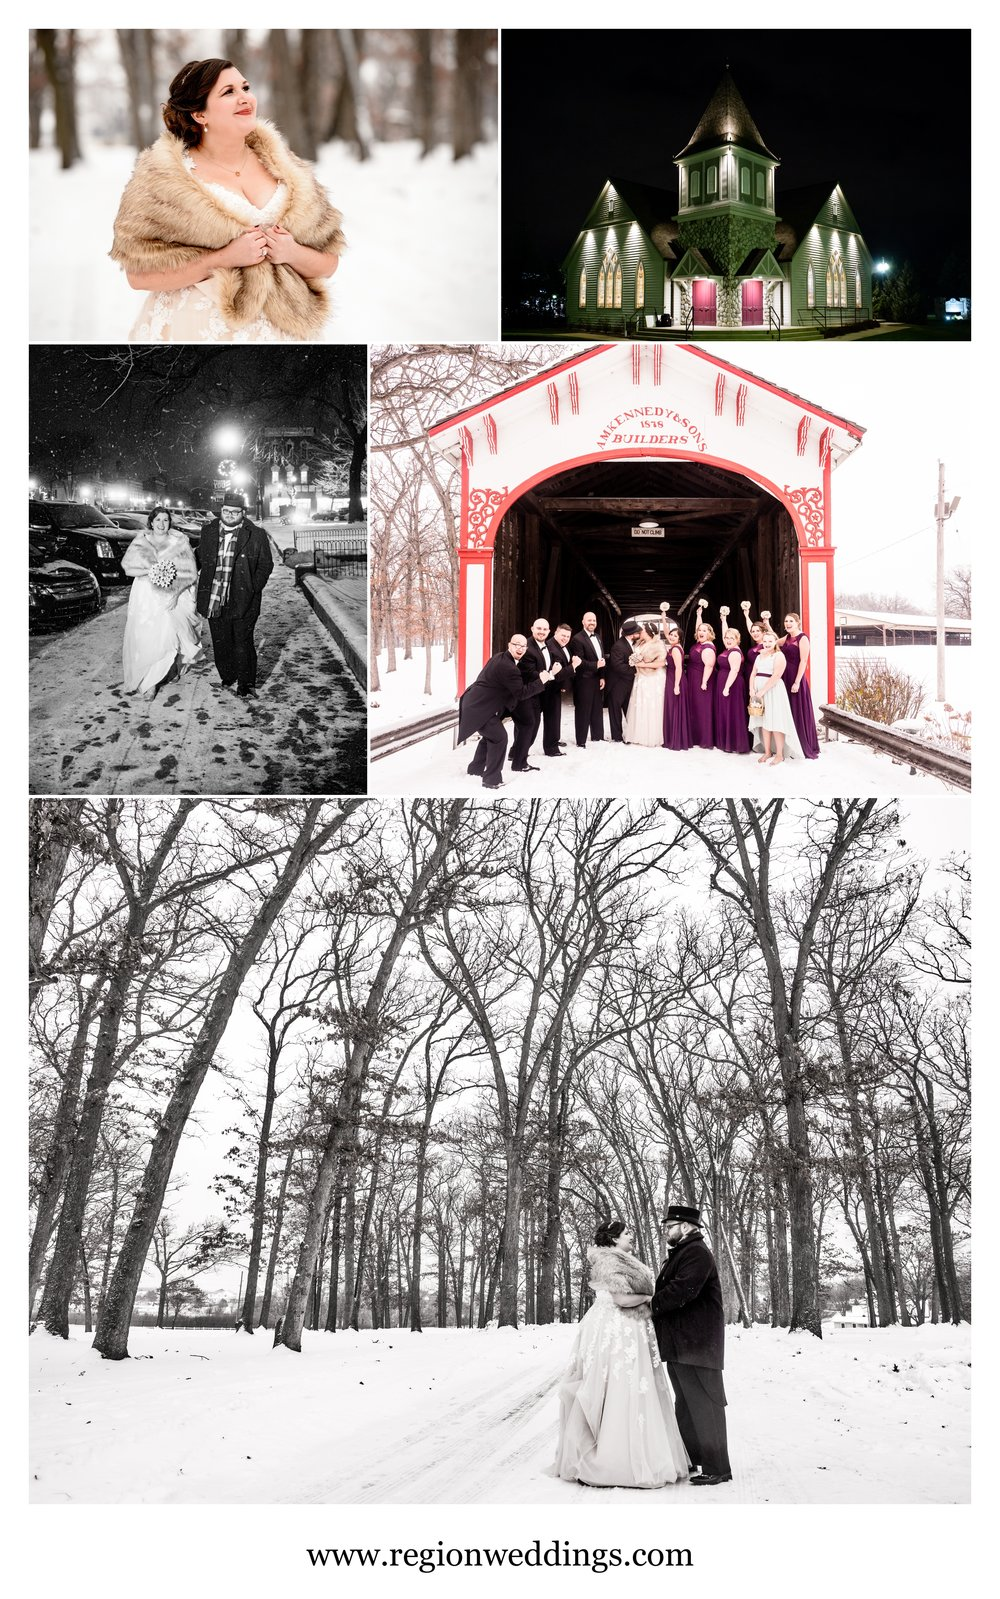 Northwest Indiana winter wedding photos in 2016.